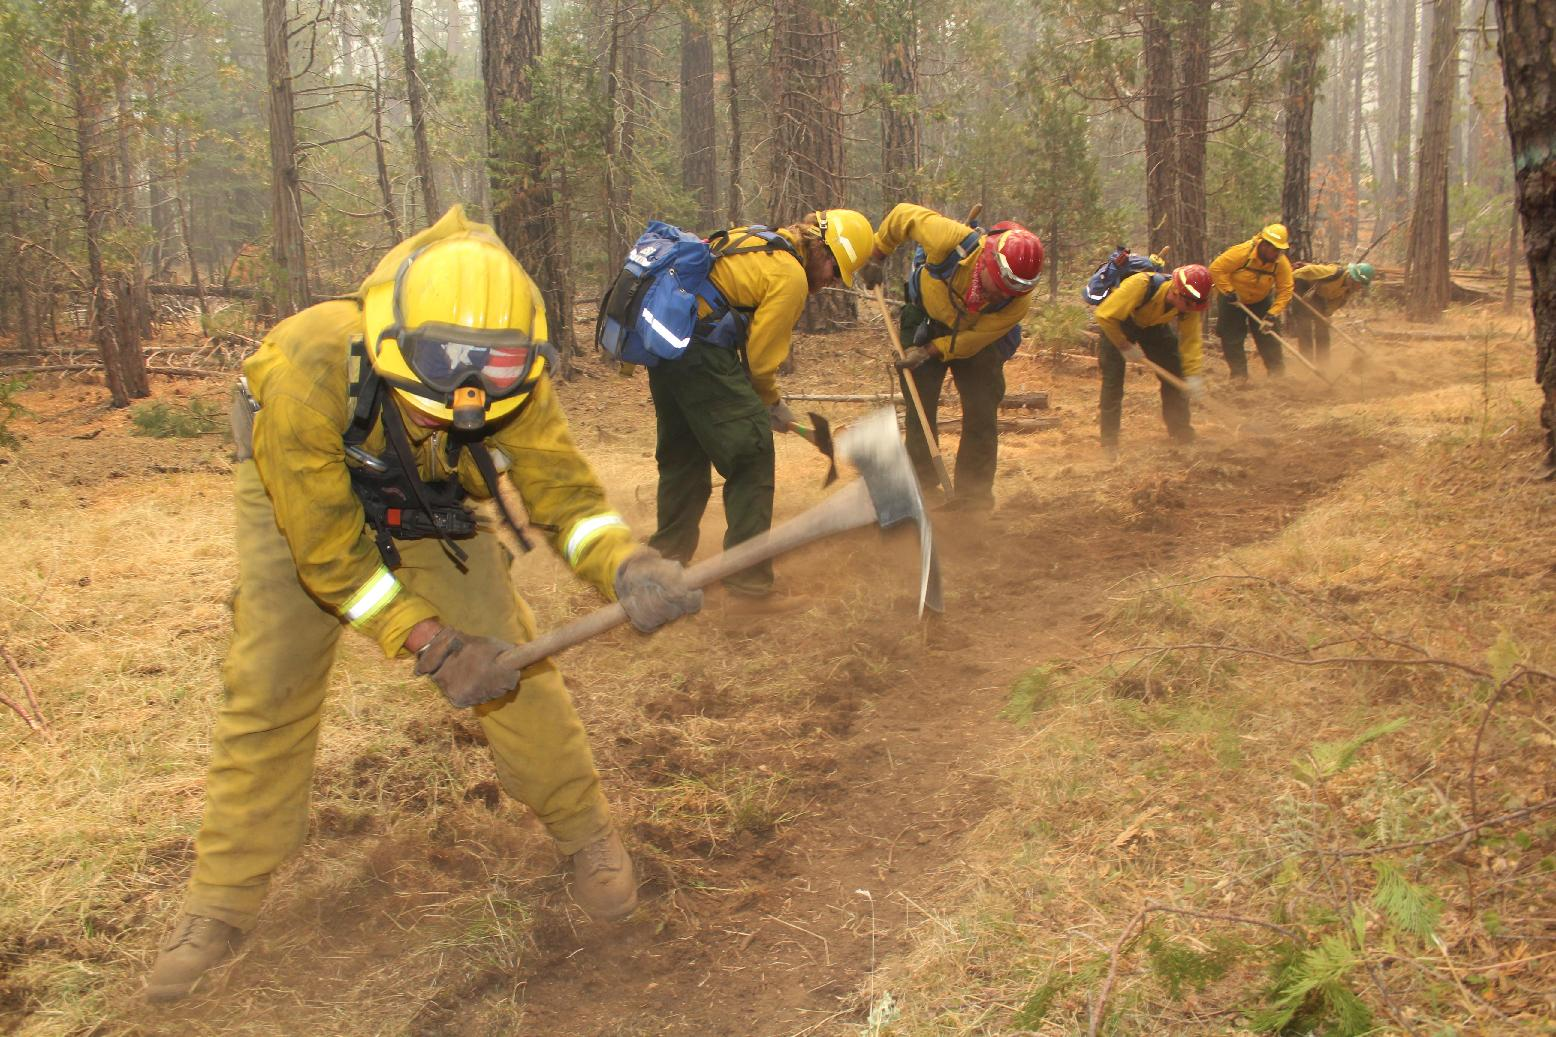 Constructing Fireline on the Rim Fire - photo USFS Mike McMillan